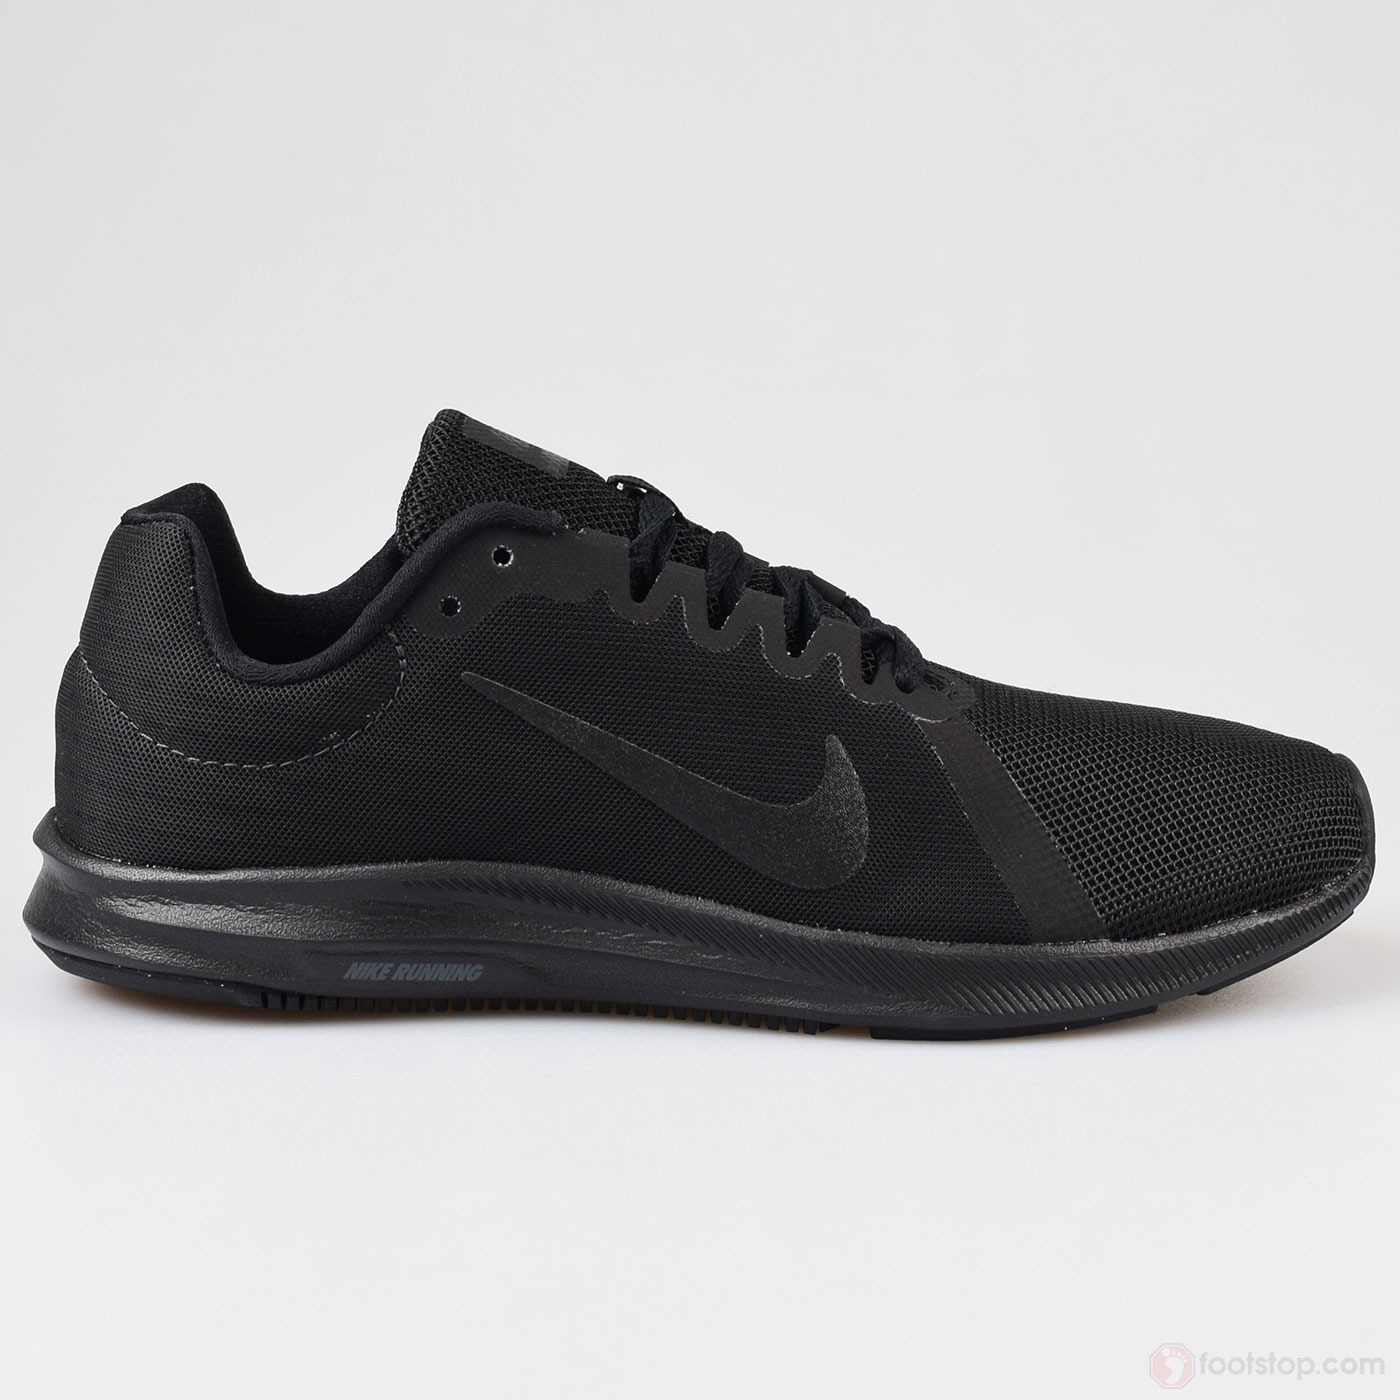 nike wmns downshifter 8 (908994 002) footstop